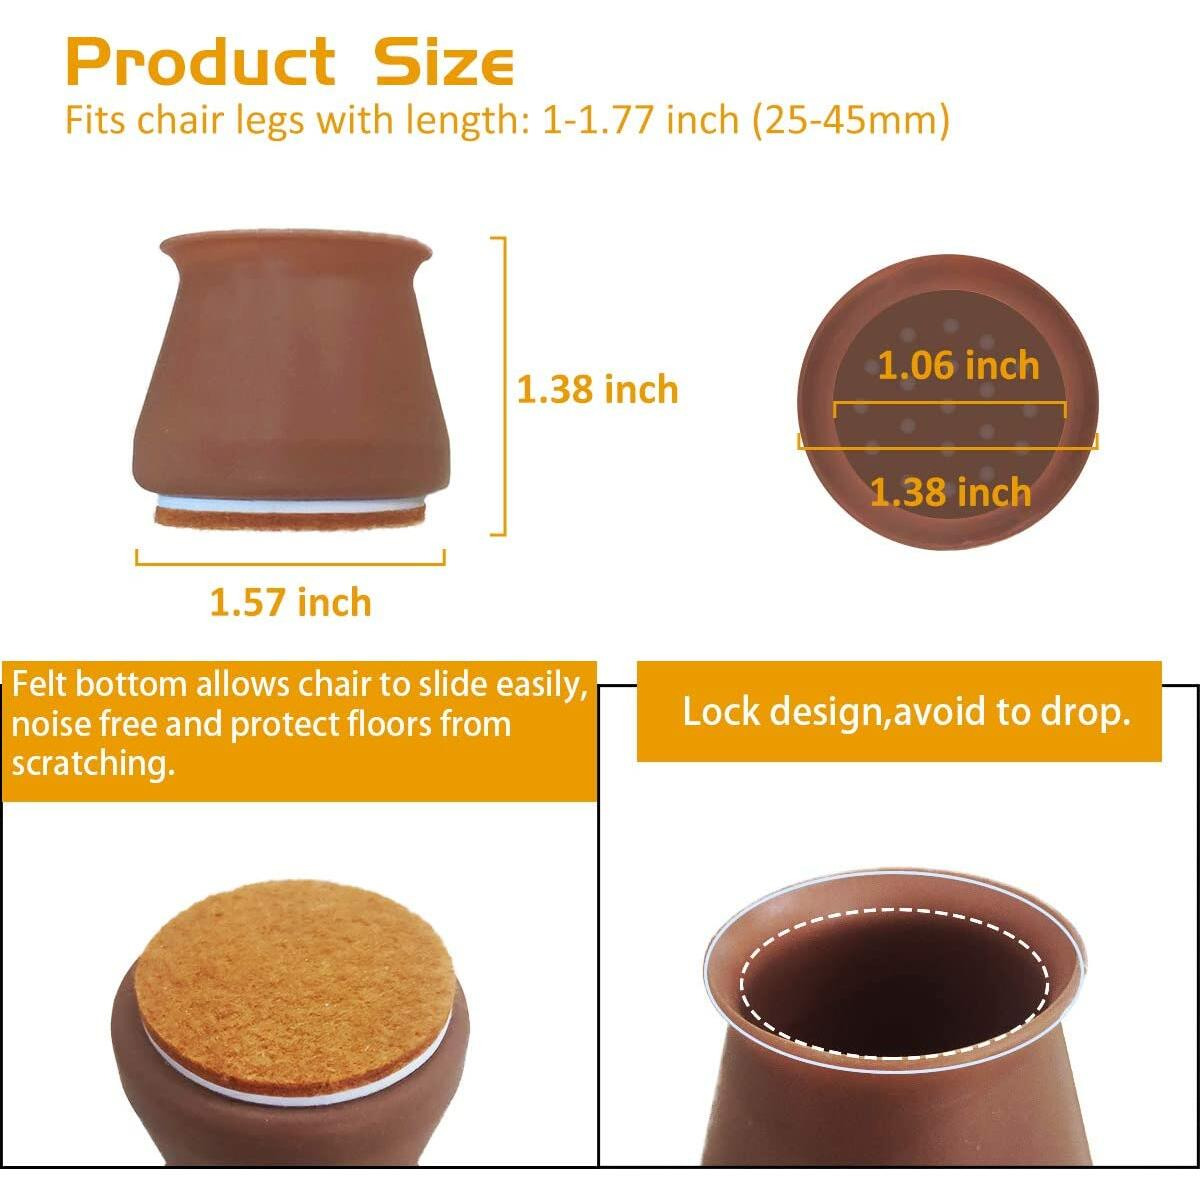 16 Pack Chair Leg caps, Silicone Chair Leg Floor Protectors Furniture Protection Cover with Felt Pads Anti-Slip Chair Floor Pads for Round or Square (Coffee)